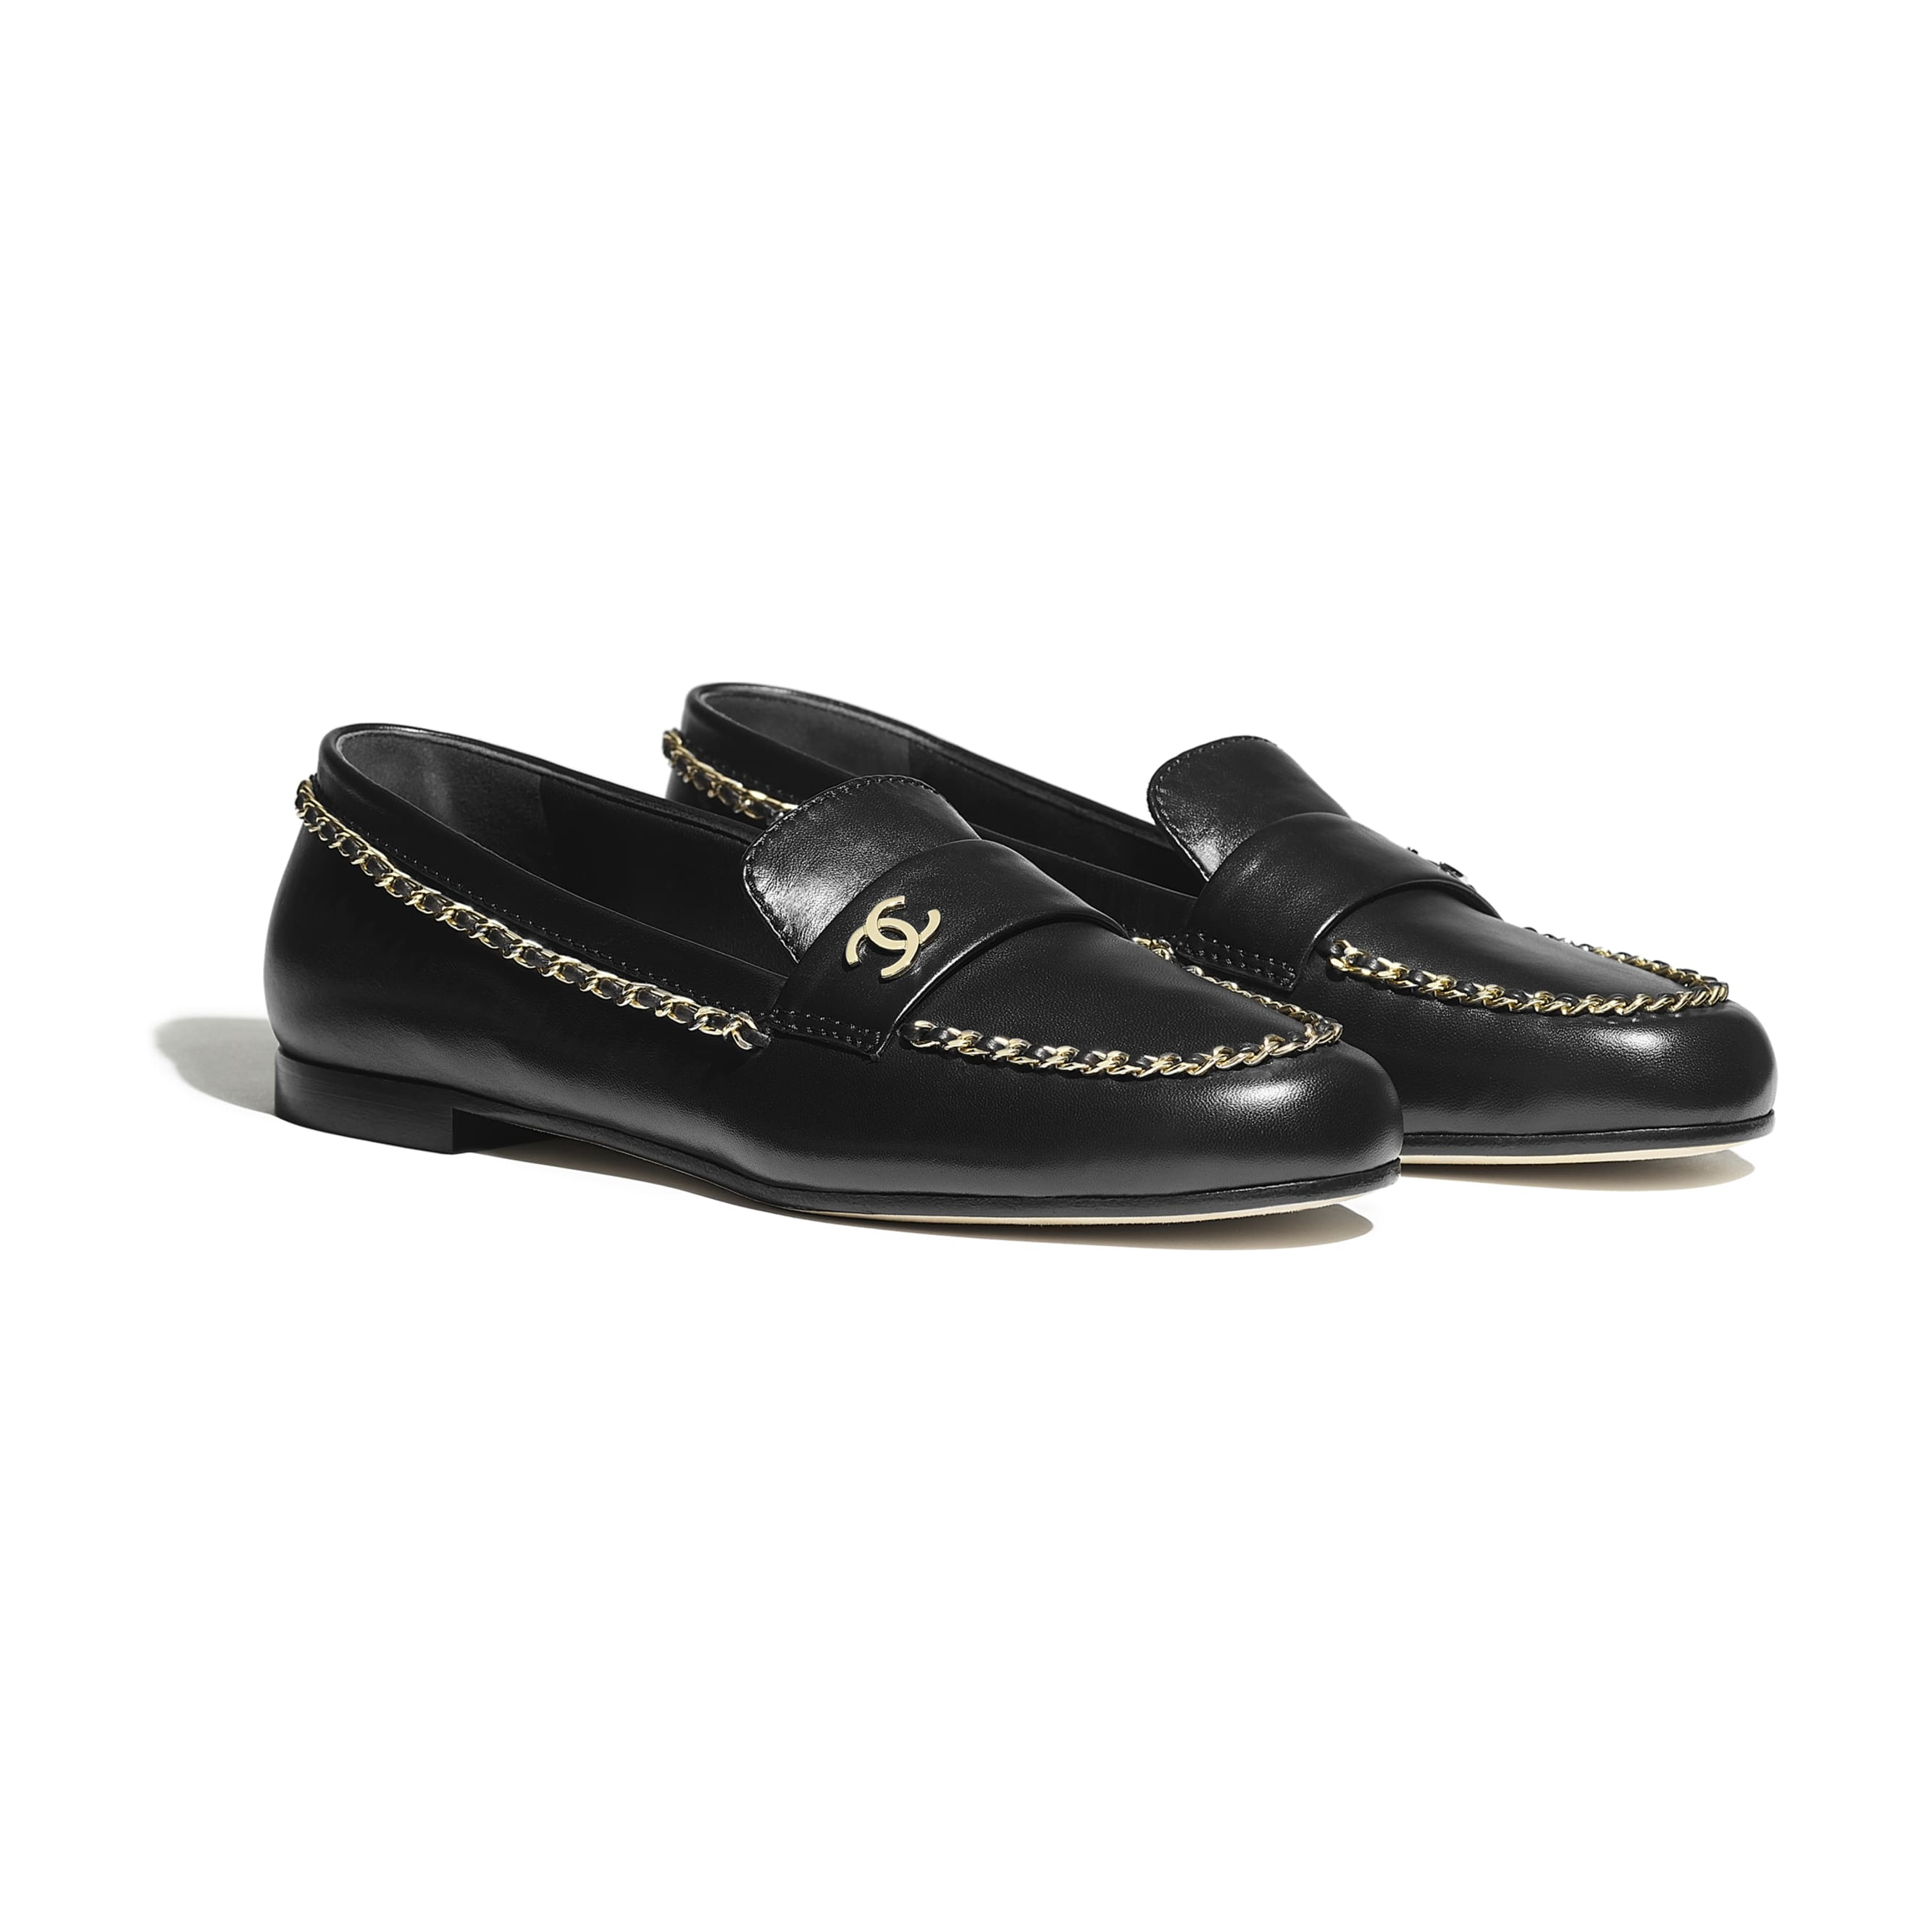 Loafers - Black - Lambskin - Alternative view - see standard sized version